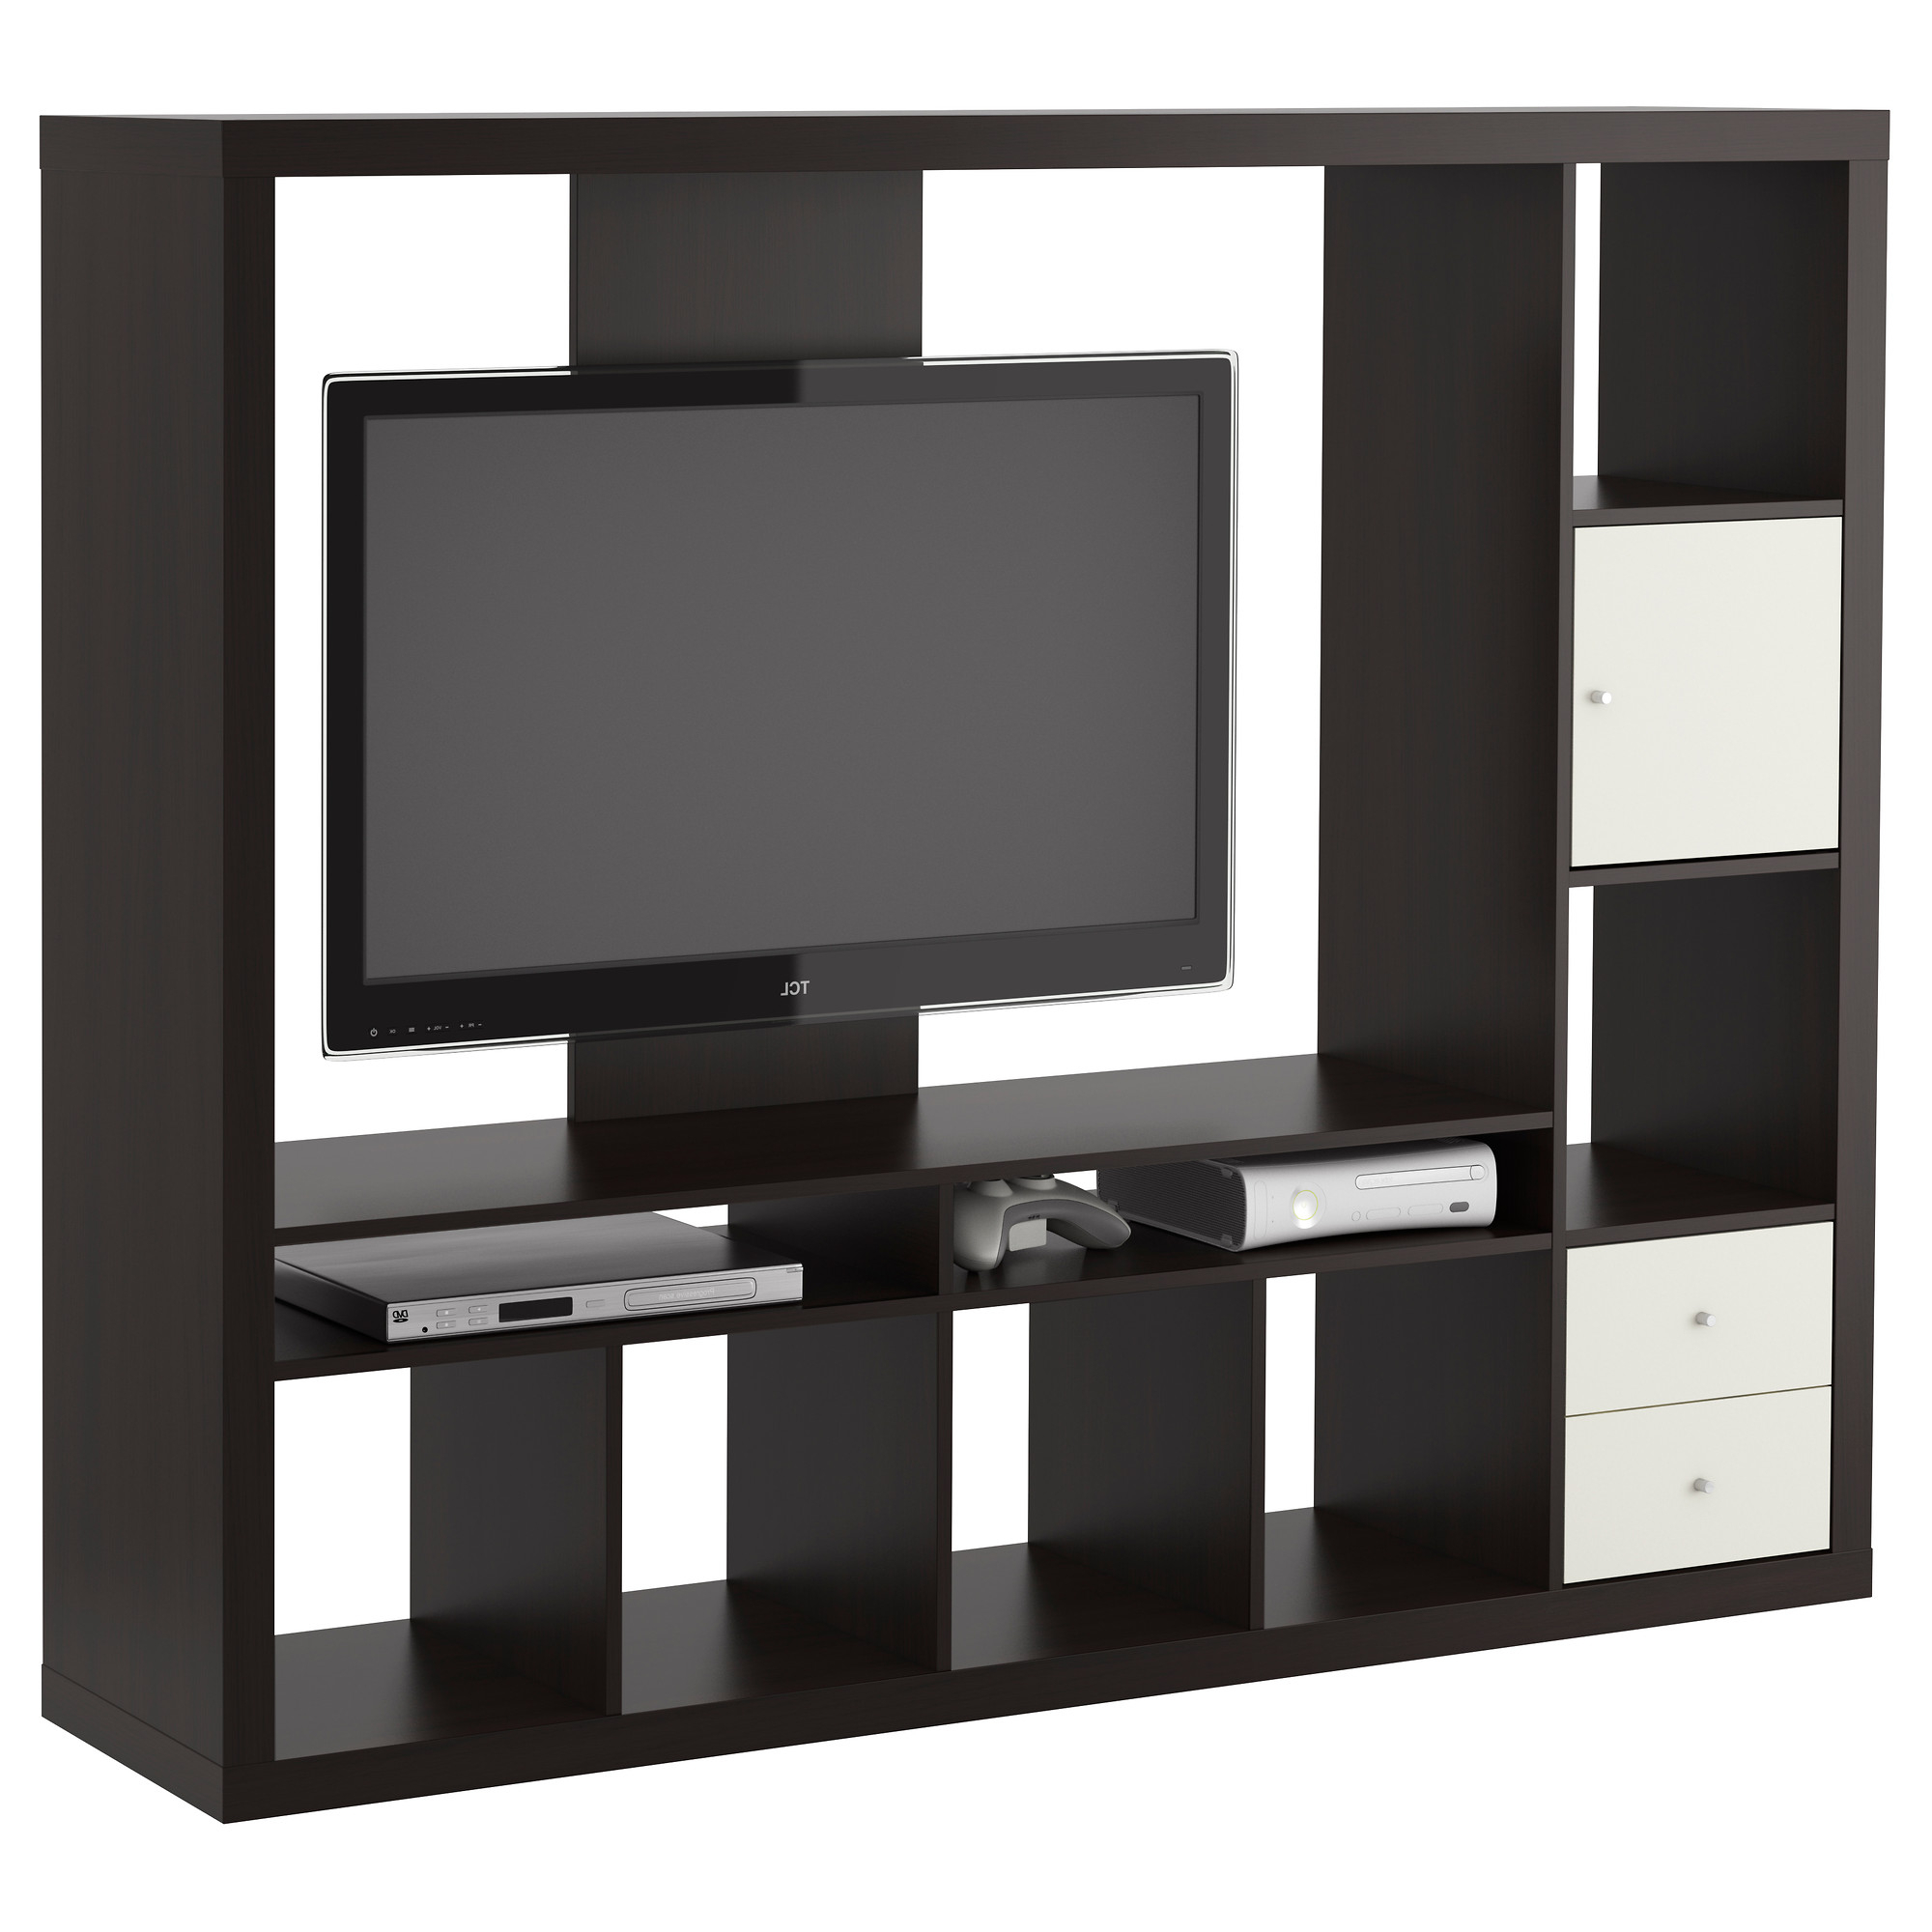 Widely Used Square Tv Stands Regarding Double Glass Doors On Ikea Tv Tv Stands Ikea For Rectangle Black (View 7 of 20)